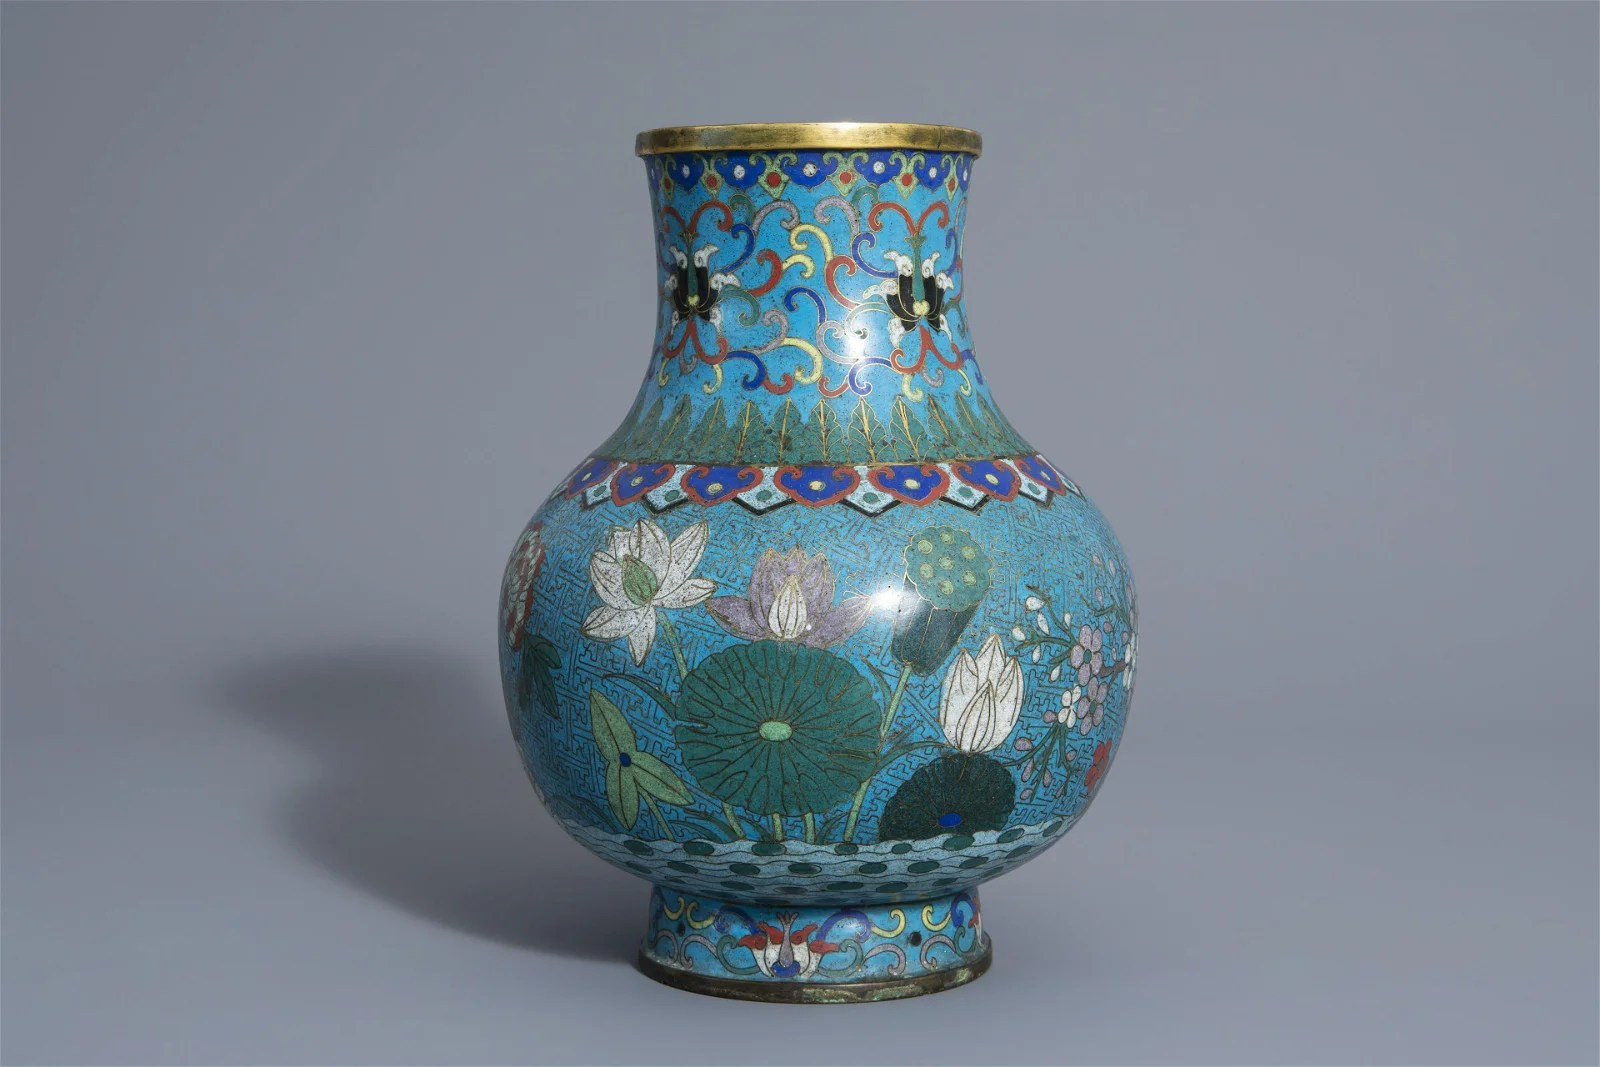 A Chinese cloisonné vase with floral design, 19th C.